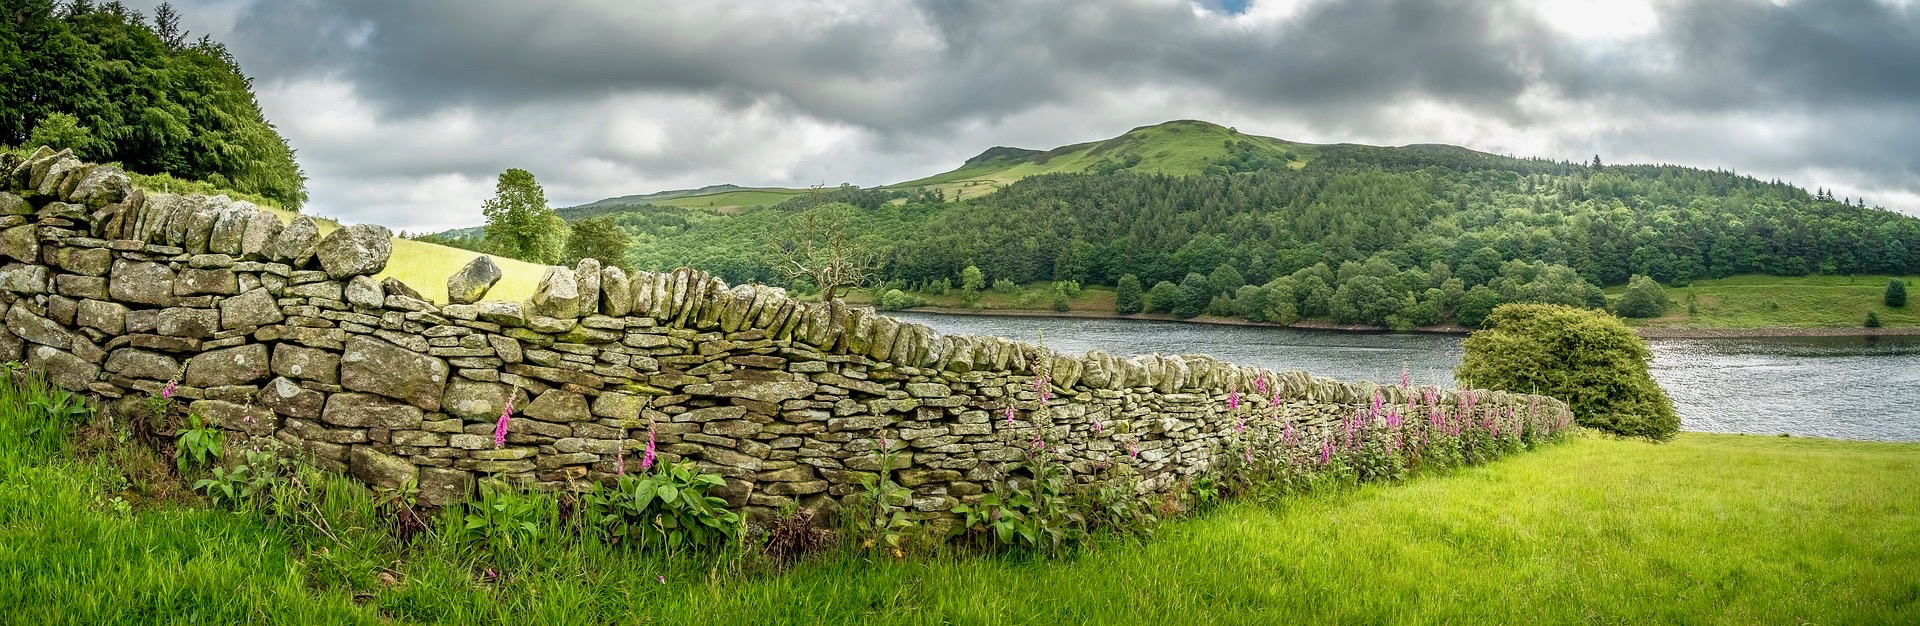 dry-stone-wall-4277805_1920